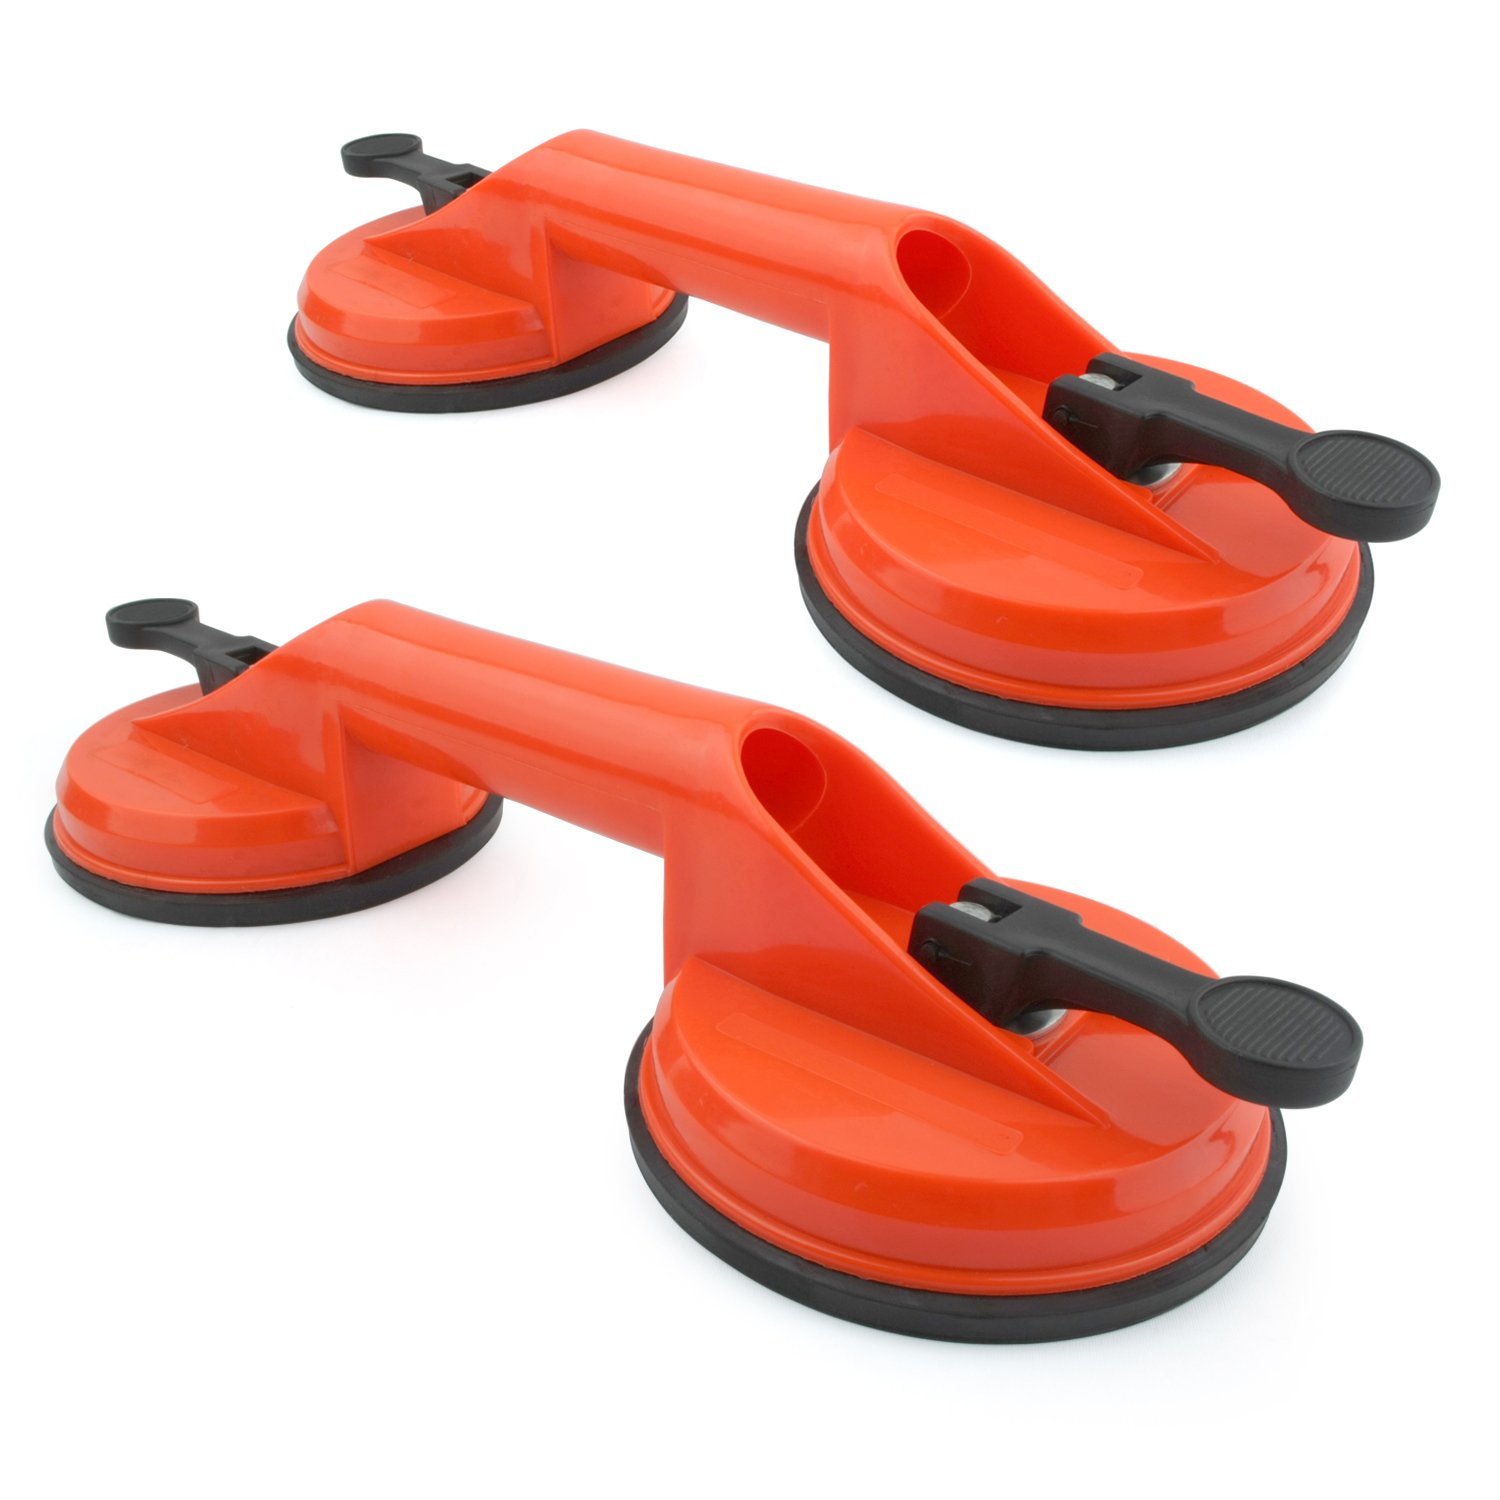 Incutex 2x double suction pad dual suction cups Heavy Duty Suction Cups glass lifter glass suckers, 100 kg lifting capacity – orange 100 kg lifting capacity - orange